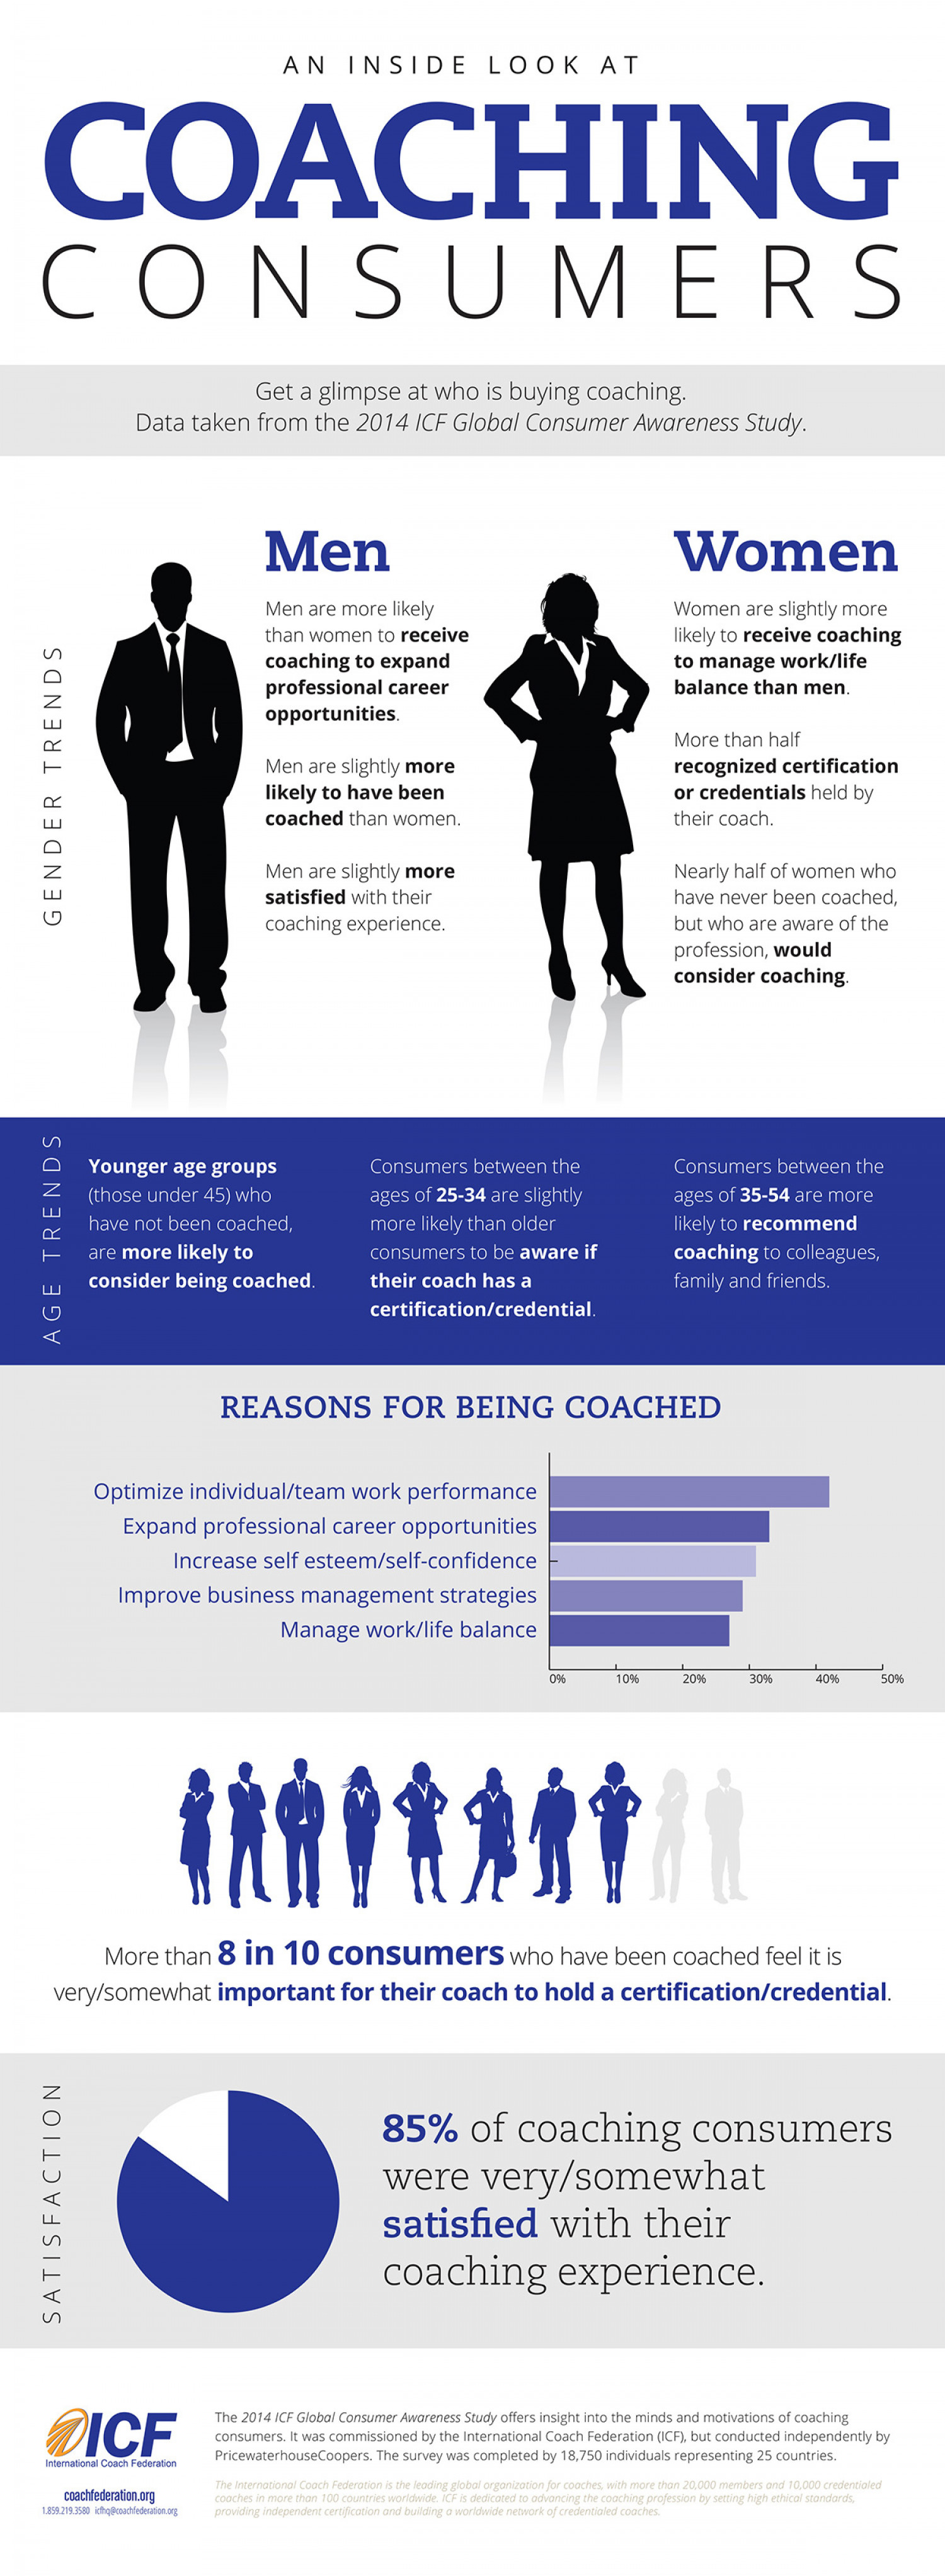 An Inside Look at Coaching Consumers Infographic